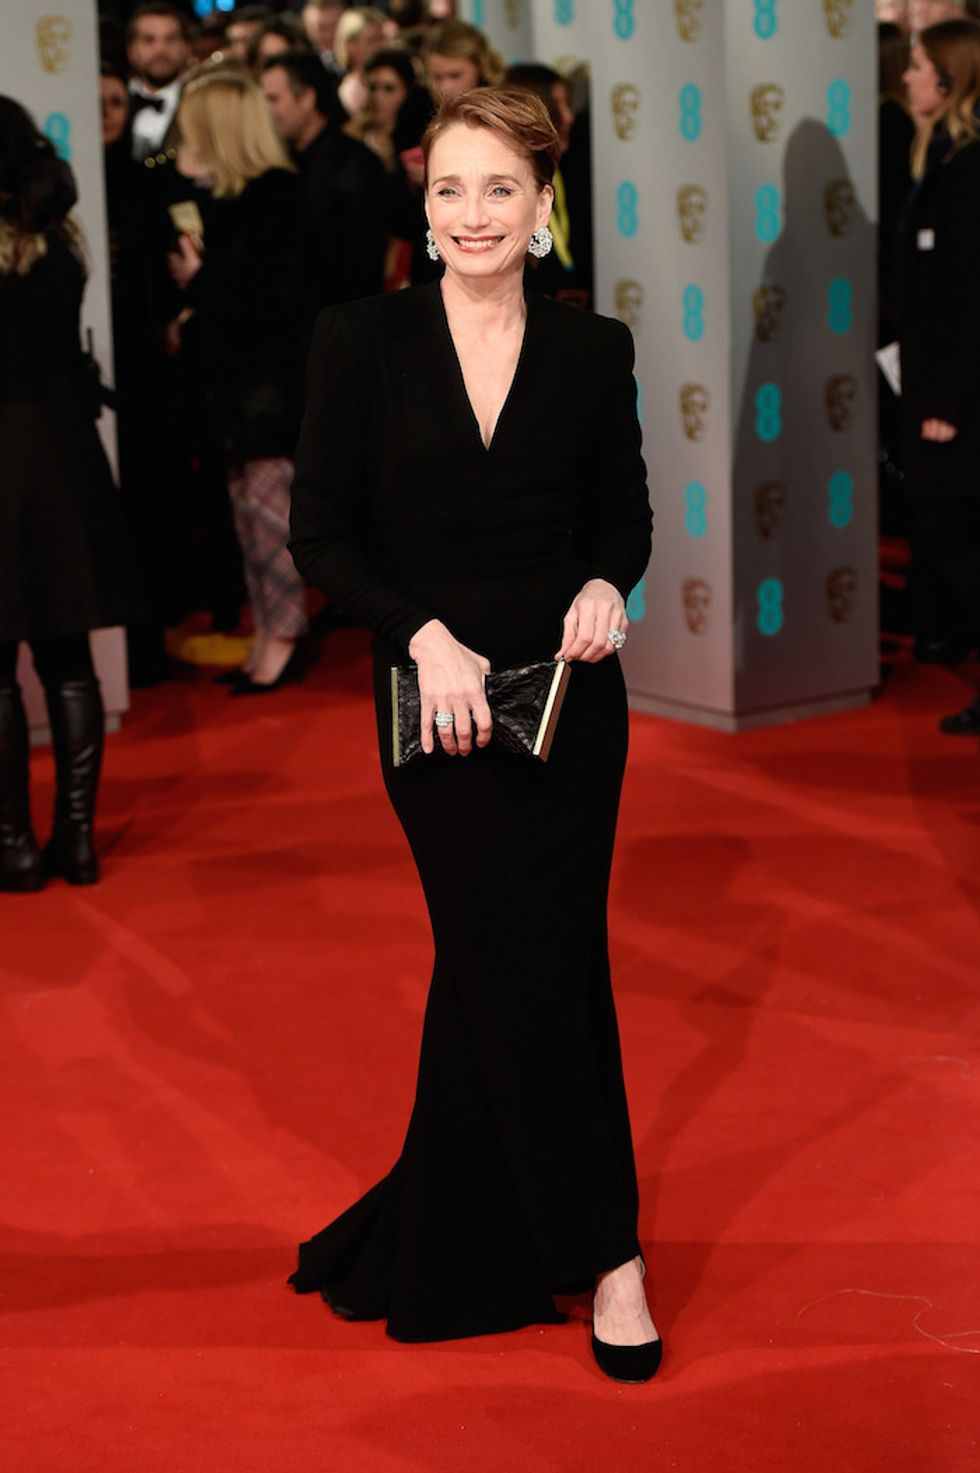 Mr. Mickey's Top Ten Favorite Looks from the BAFTAS